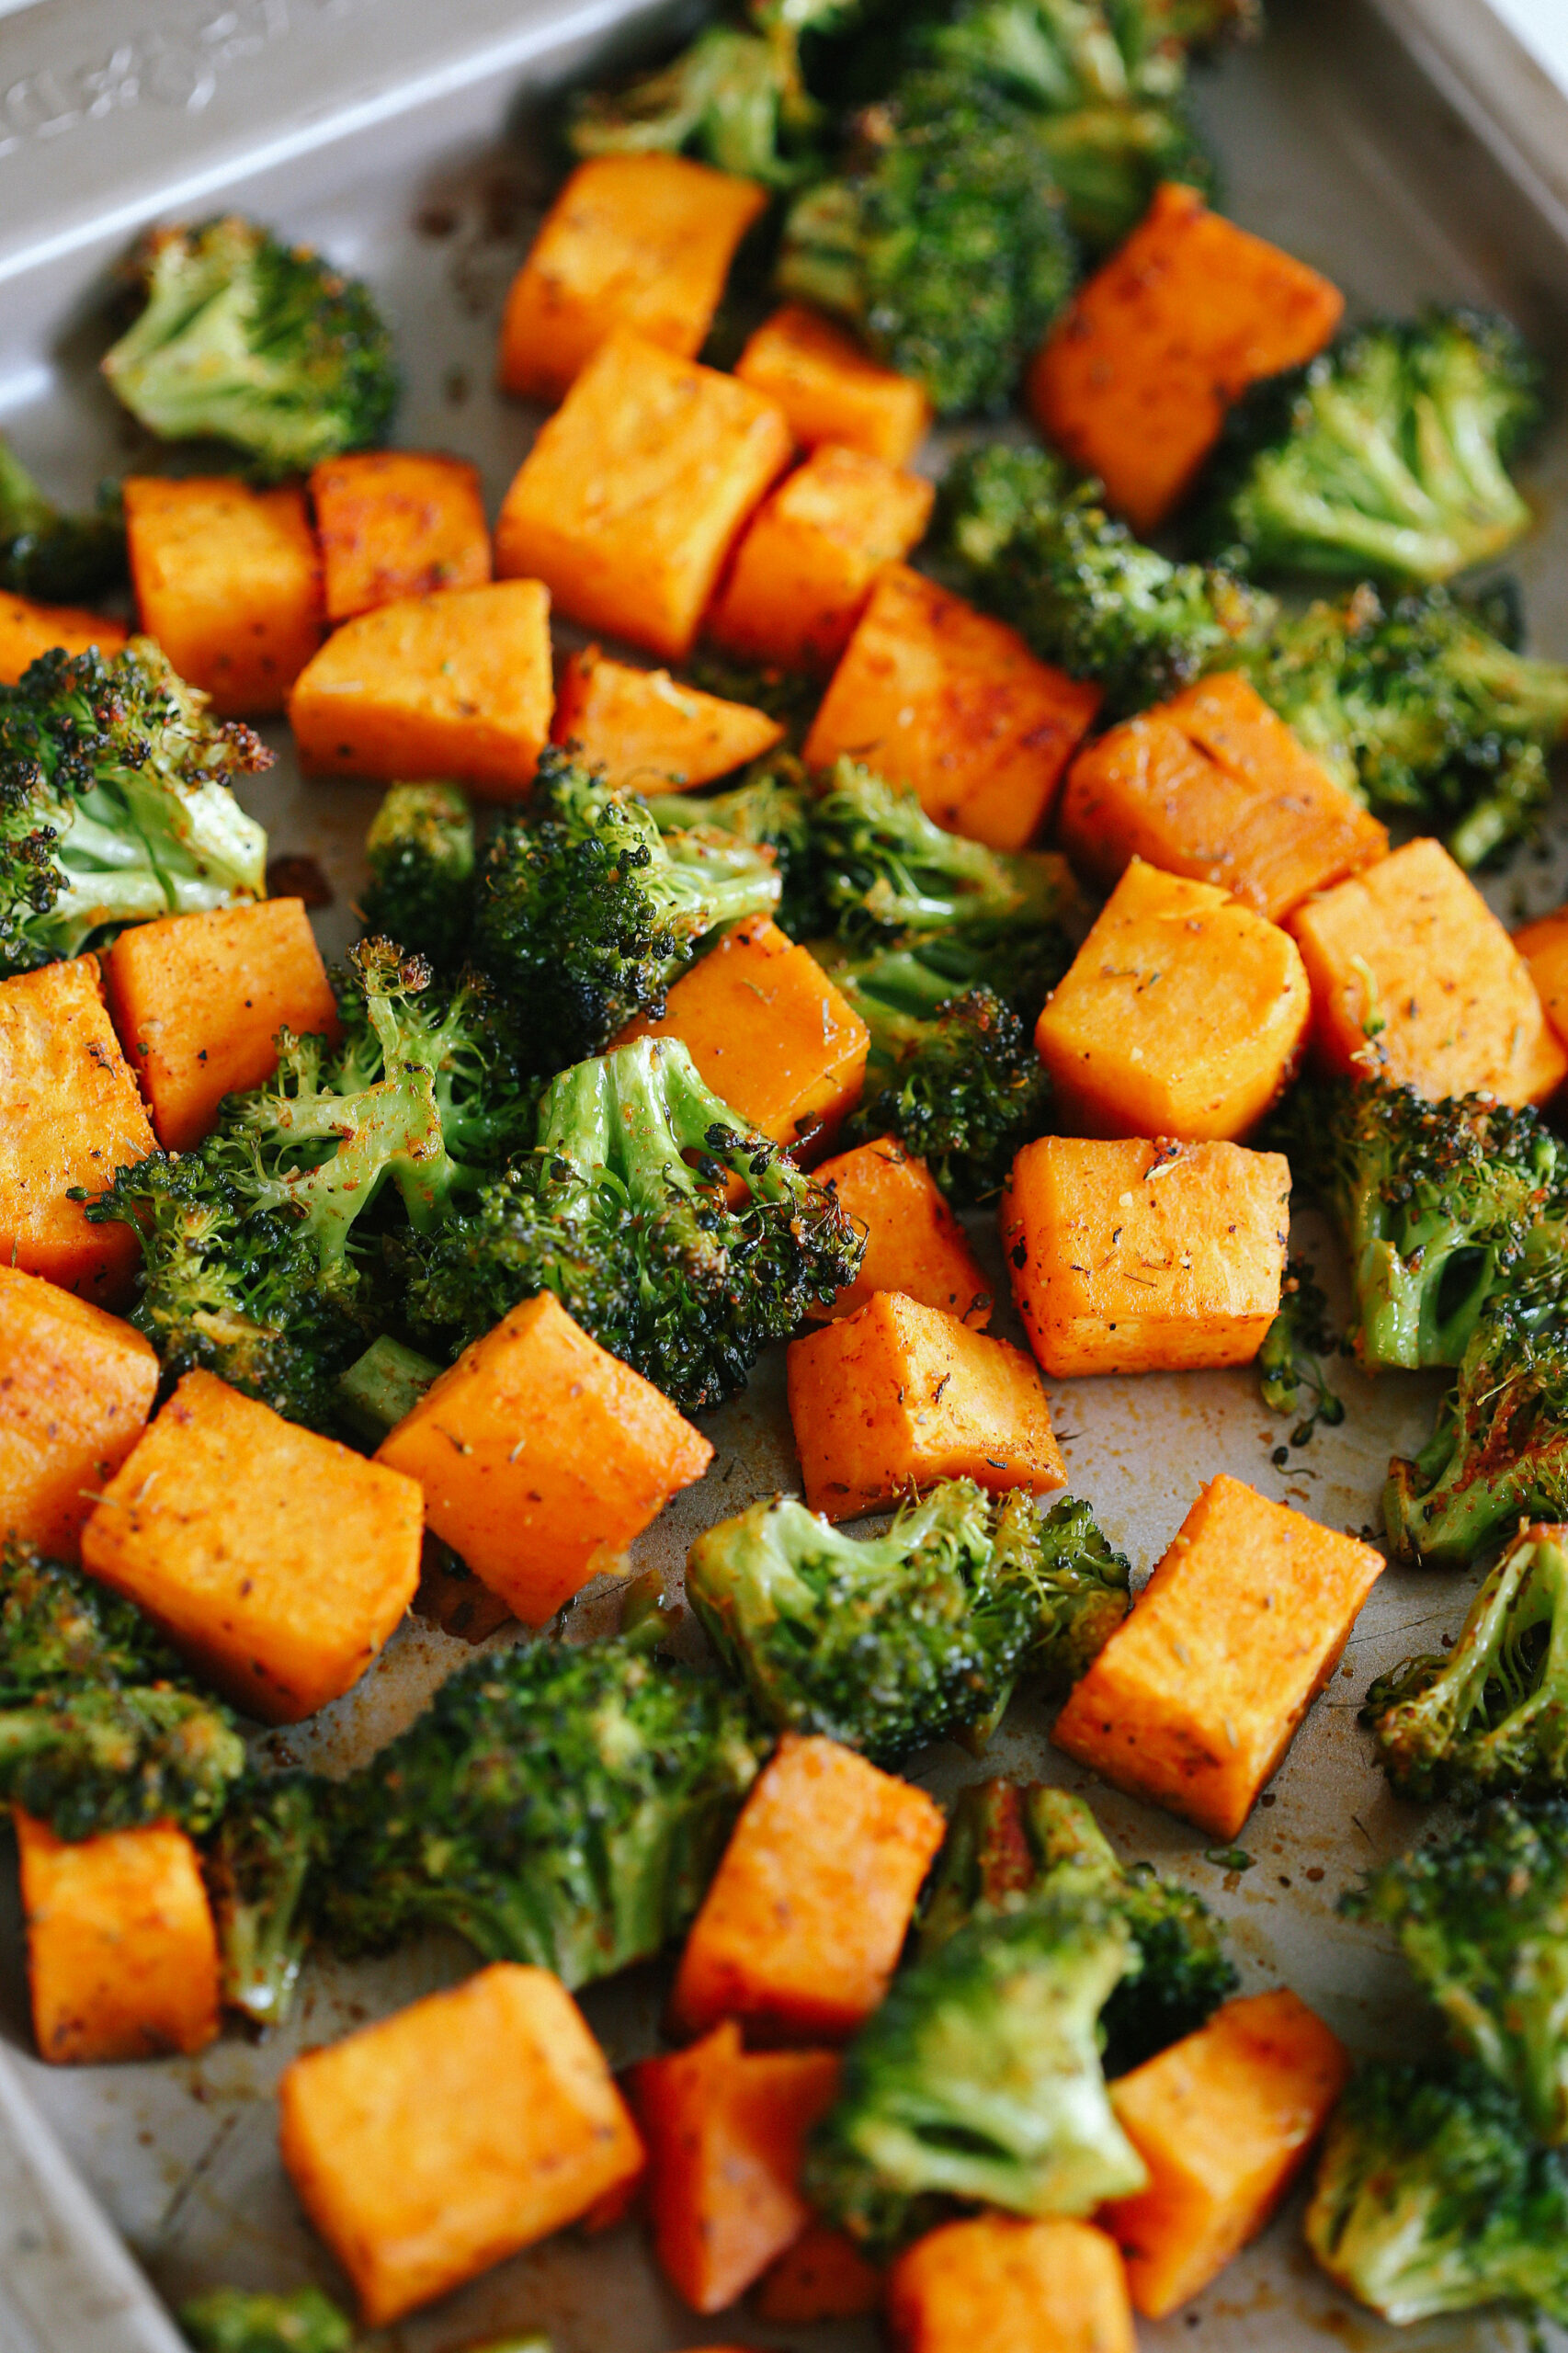 Perfectly Roasted Broccoli & Sweet Potatoes - recipes veg for dinner